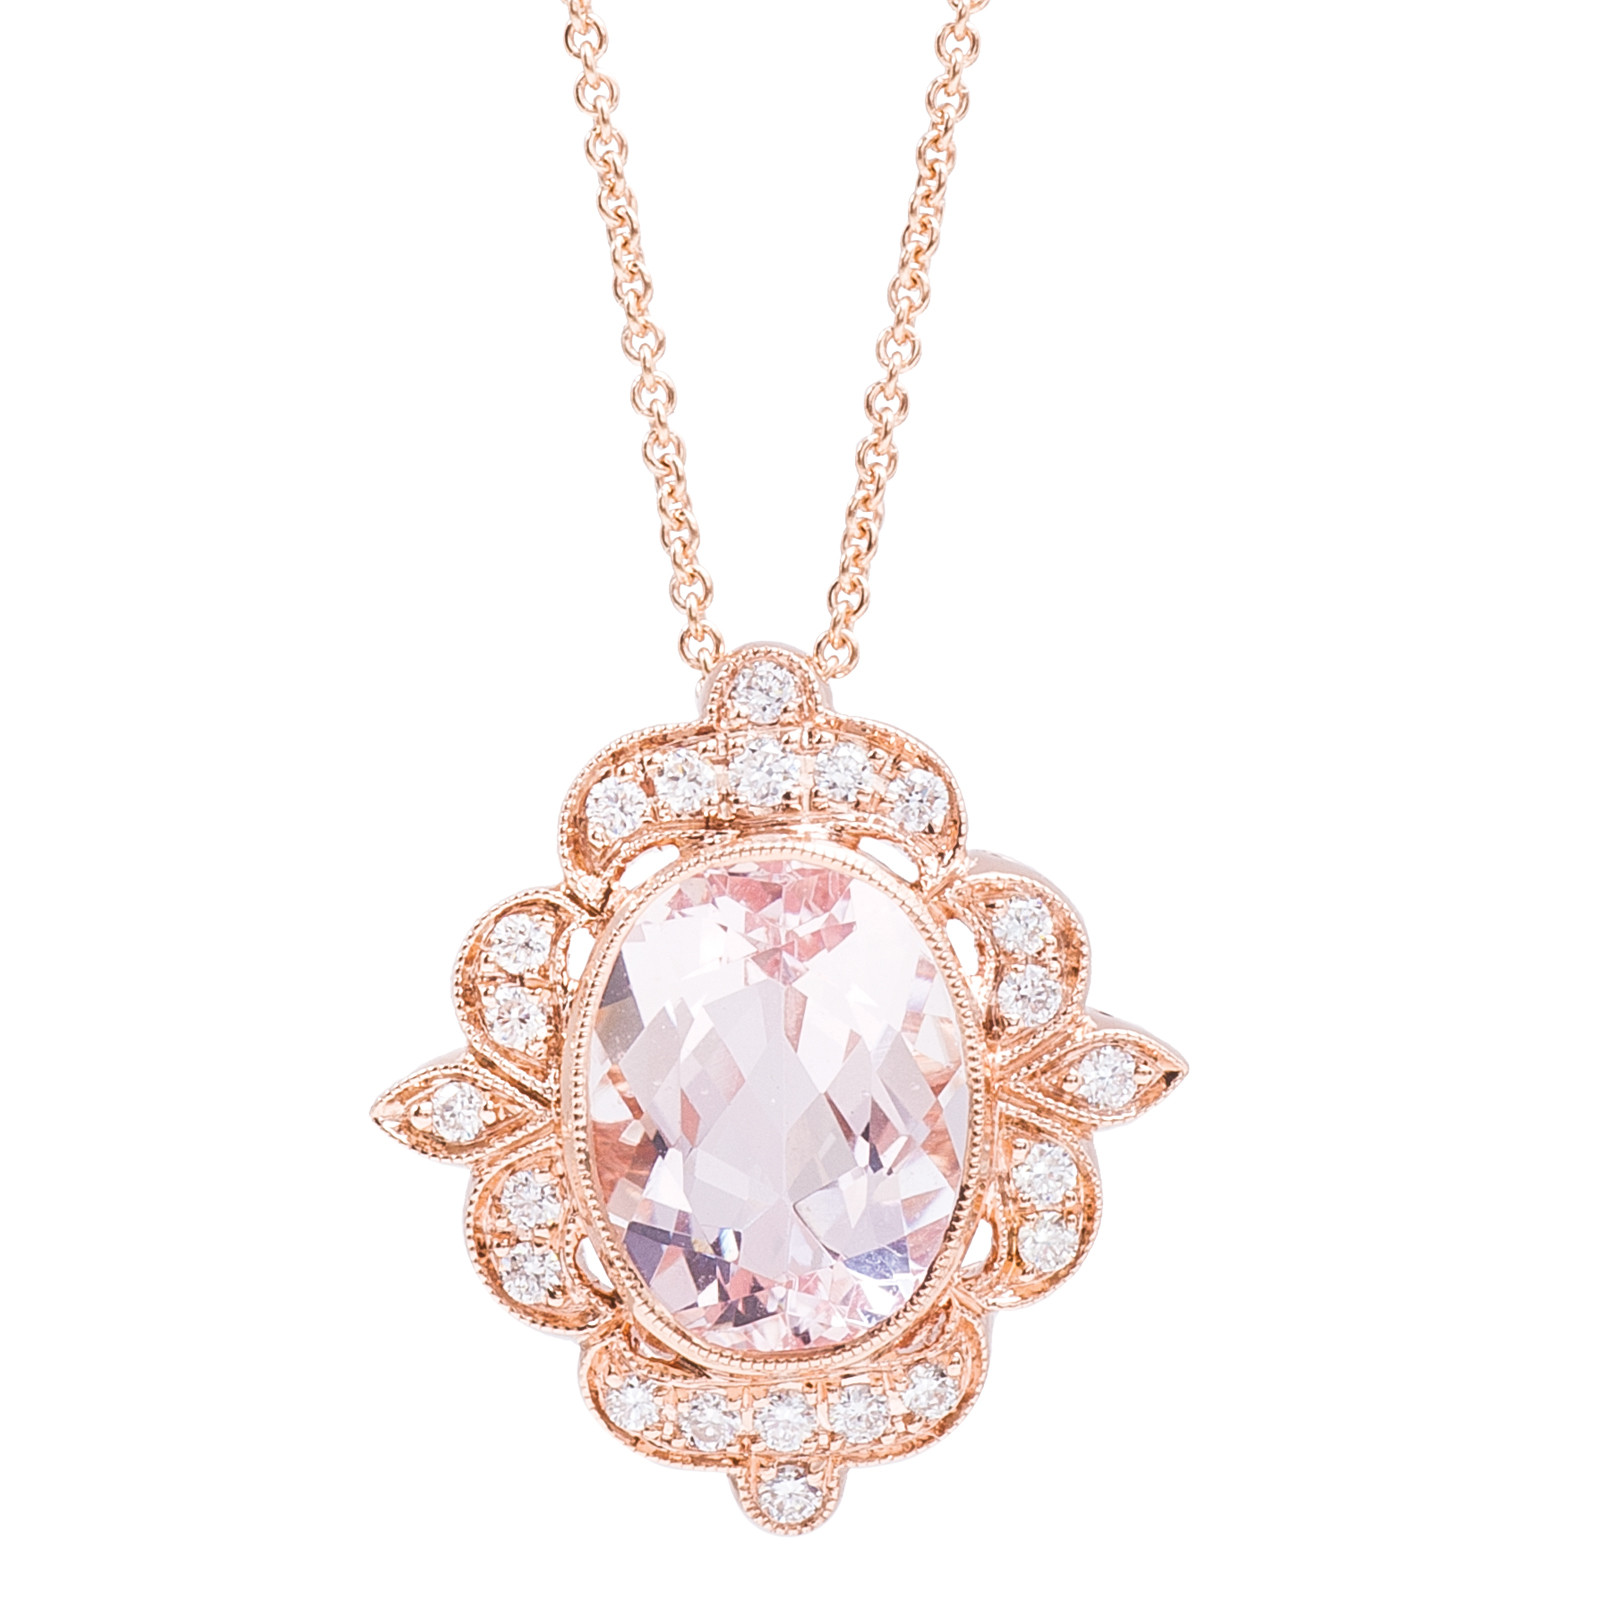 pendants necklaces pid morganite solitaire pendant necklace rose pear gemstone gold and